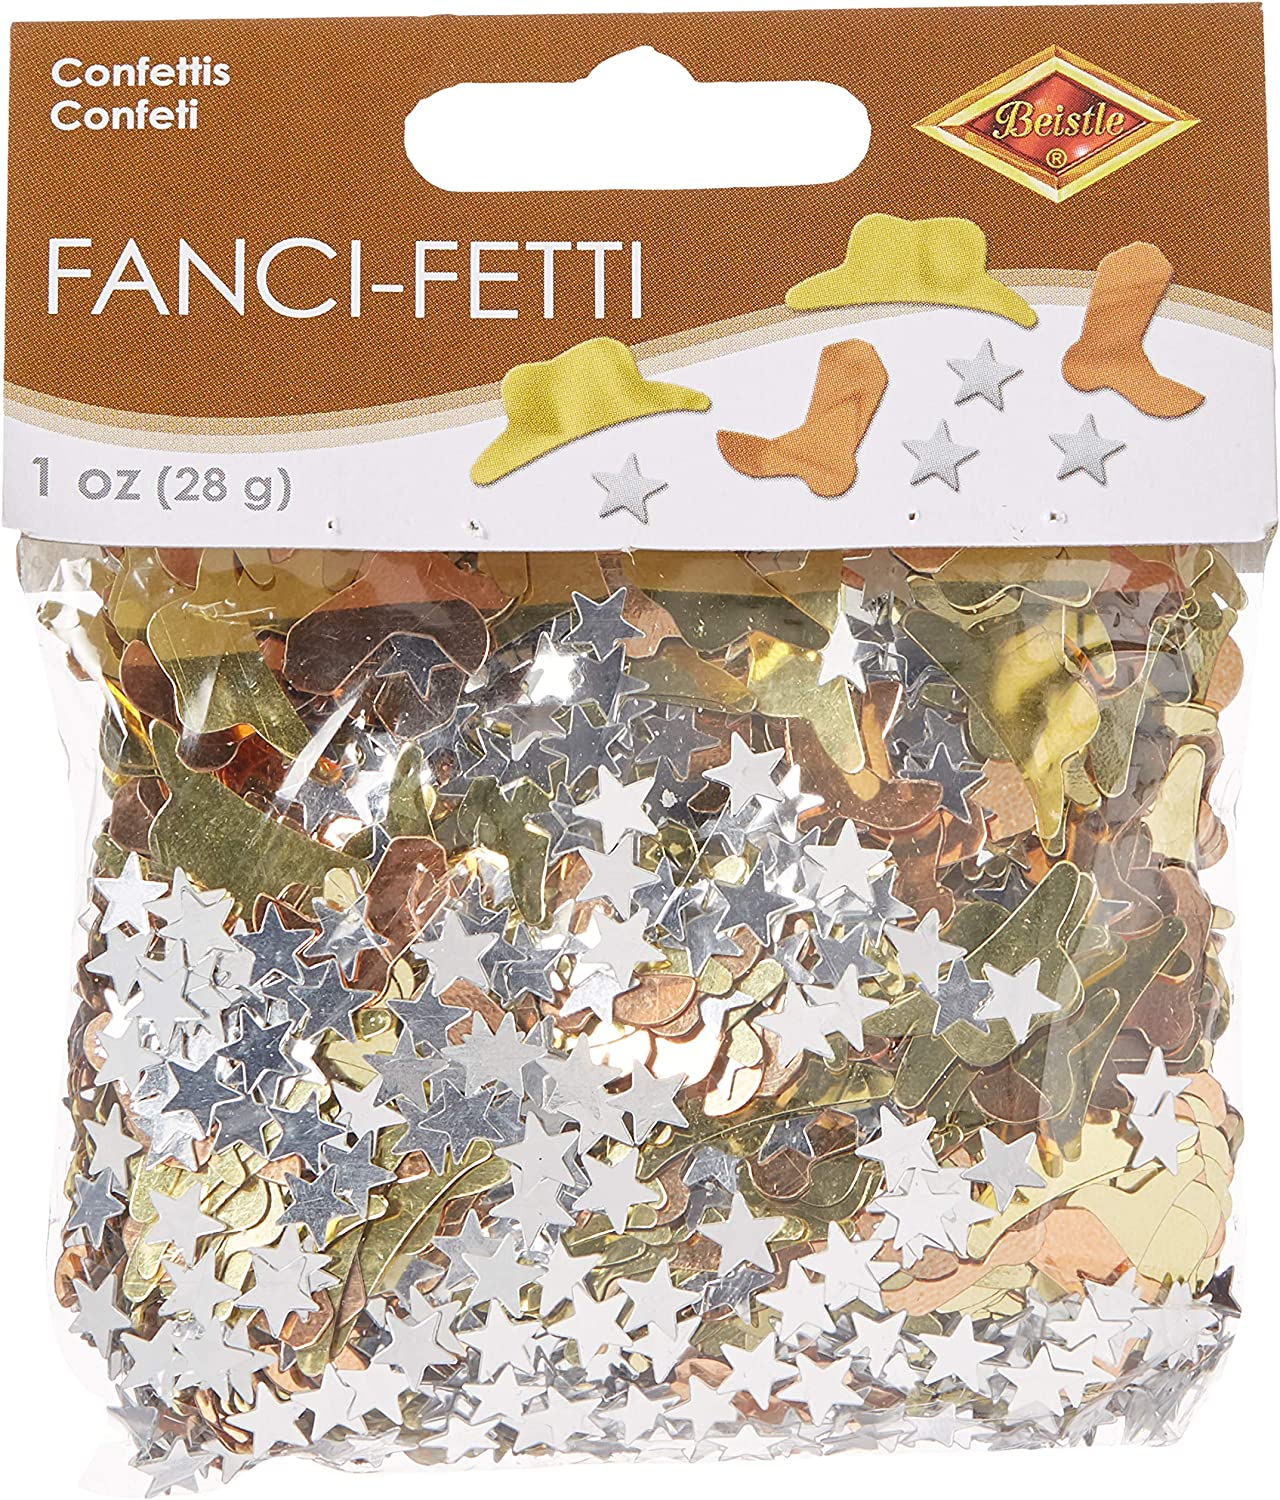 BEISTle CN083 Western Party Confetti